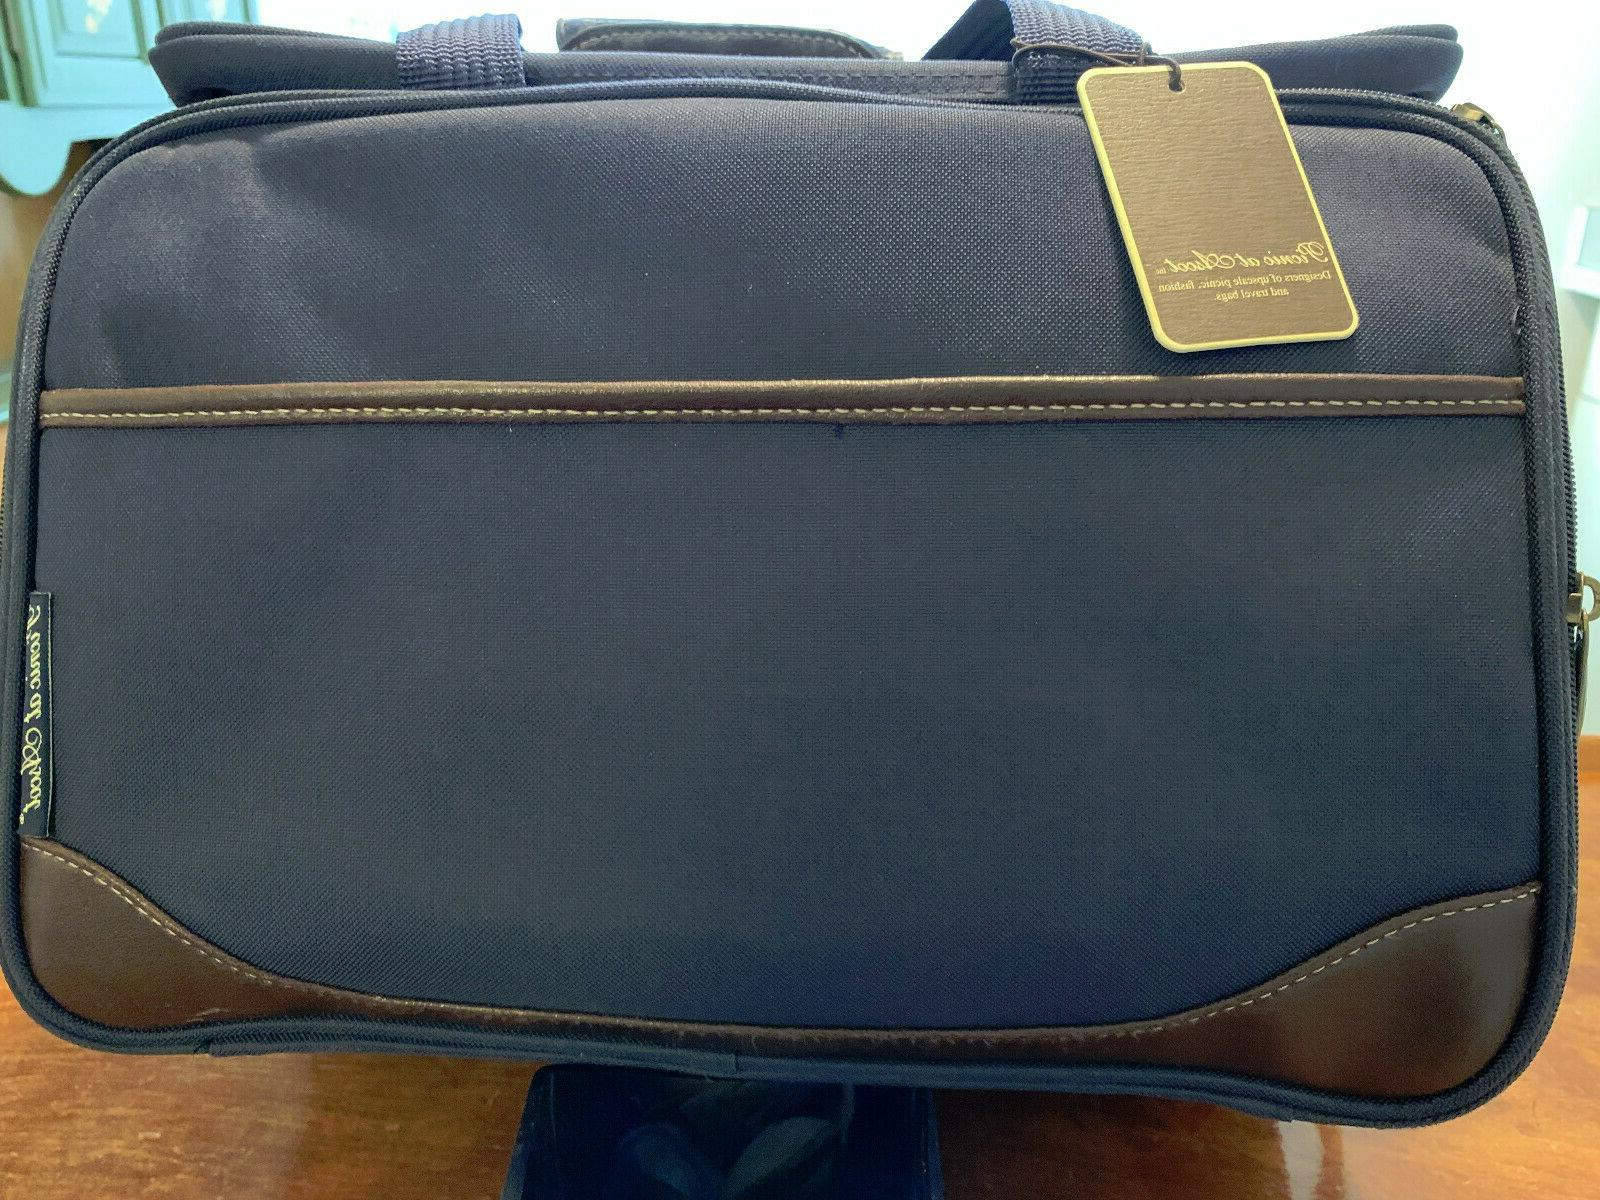 New Complete Picnic Ascot Leather Navy Cooler